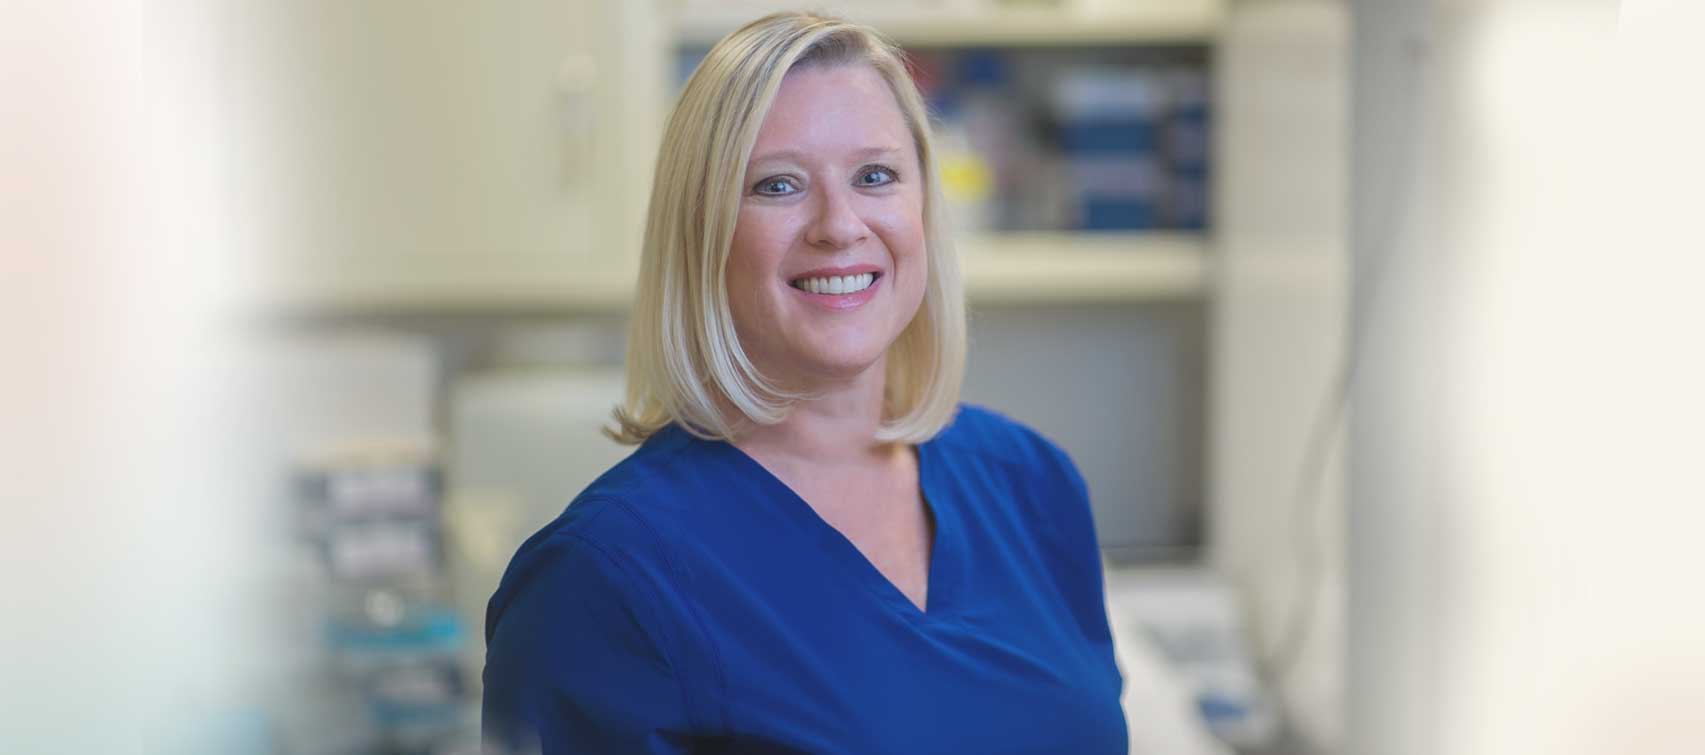 Dentist and researcher Dr. Cara Gonzales' research into oral cancer and pain searches for a cure to help survivors cope.